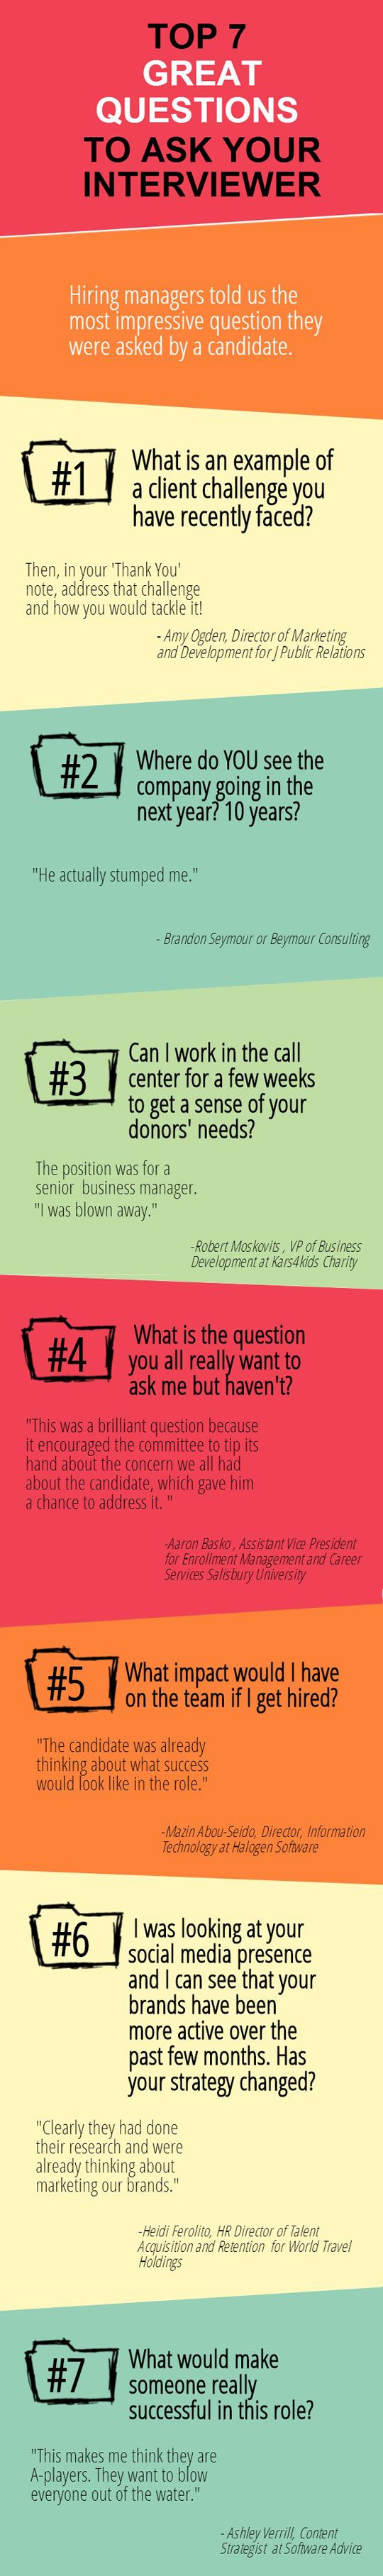 interview questions to ask an interviewer the muse photo of speech bubbles courtesy of shutterstock